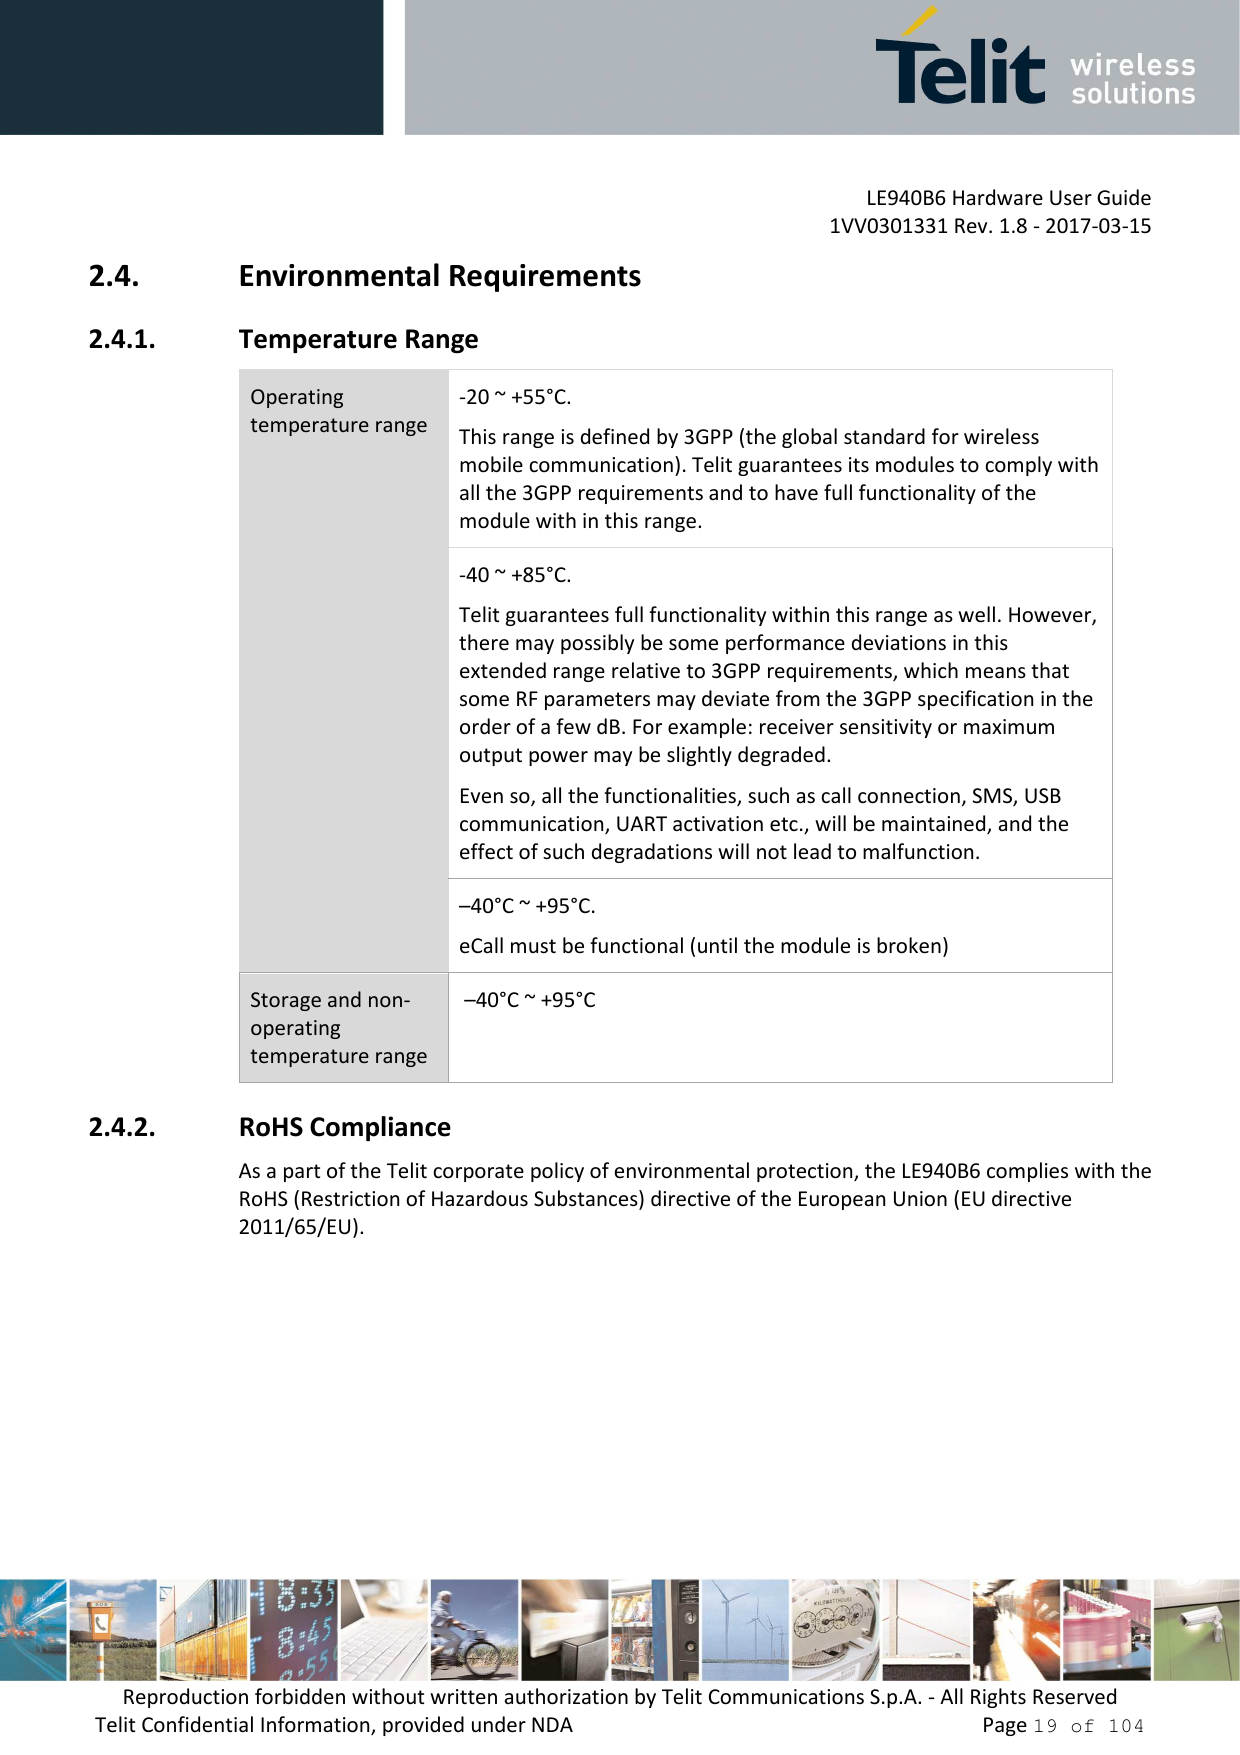 LE940B6 Hardware User Guide     1VV0301331 Rev. 1.8 - 2017-03-15 Reproduction forbidden without written authorization by Telit Communications S.p.A. - All Rights Reserved Telit Confidential Information, provided under NDA                 Page 19 of 104 2.4. Environmental Requirements 2.4.1. Temperature Range Operating temperature range -20 ~ +55°C.  This range is defined by 3GPP (the global standard for wireless mobile communication). Telit guarantees its modules to comply with all the 3GPP requirements and to have full functionality of the module with in this range. -40 ~ +85°C.  Telit guarantees full functionality within this range as well. However, there may possibly be some performance deviations in this extended range relative to 3GPP requirements, which means that some RF parameters may deviate from the 3GPP specification in the order of a few dB. For example: receiver sensitivity or maximum output power may be slightly degraded.  Even so, all the functionalities, such as call connection, SMS, USB communication, UART activation etc., will be maintained, and the effect of such degradations will not lead to malfunction. –40°C ~ +95°C.  eCall must be functional (until the module is broken) Storage and non-operating temperature range  –40°C ~ +95°C 2.4.2. RoHS Compliance As a part of the Telit corporate policy of environmental protection, the LE940B6 complies with the RoHS (Restriction of Hazardous Substances) directive of the European Union (EU directive 2011/65/EU).